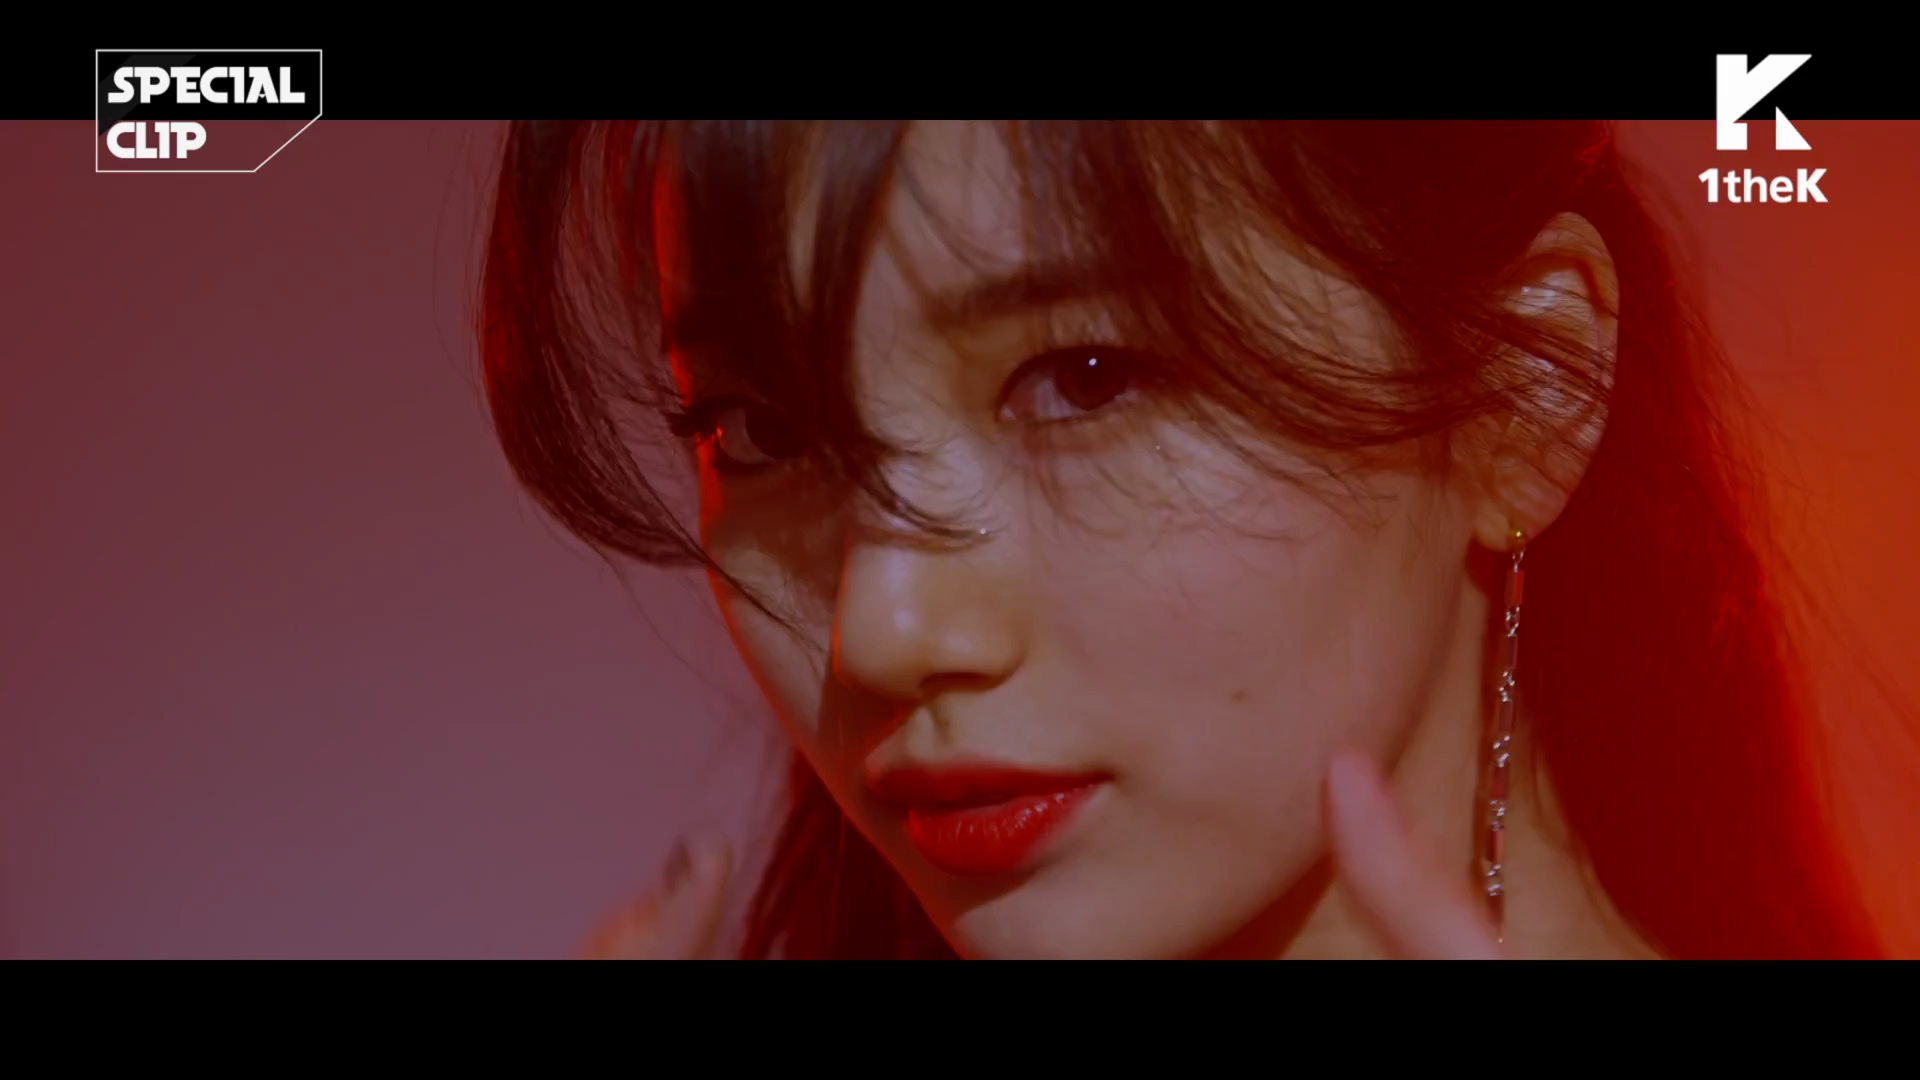 5BSpecial_Clip5D_Suzy28suji29_Yes_No_Maybe.JPG